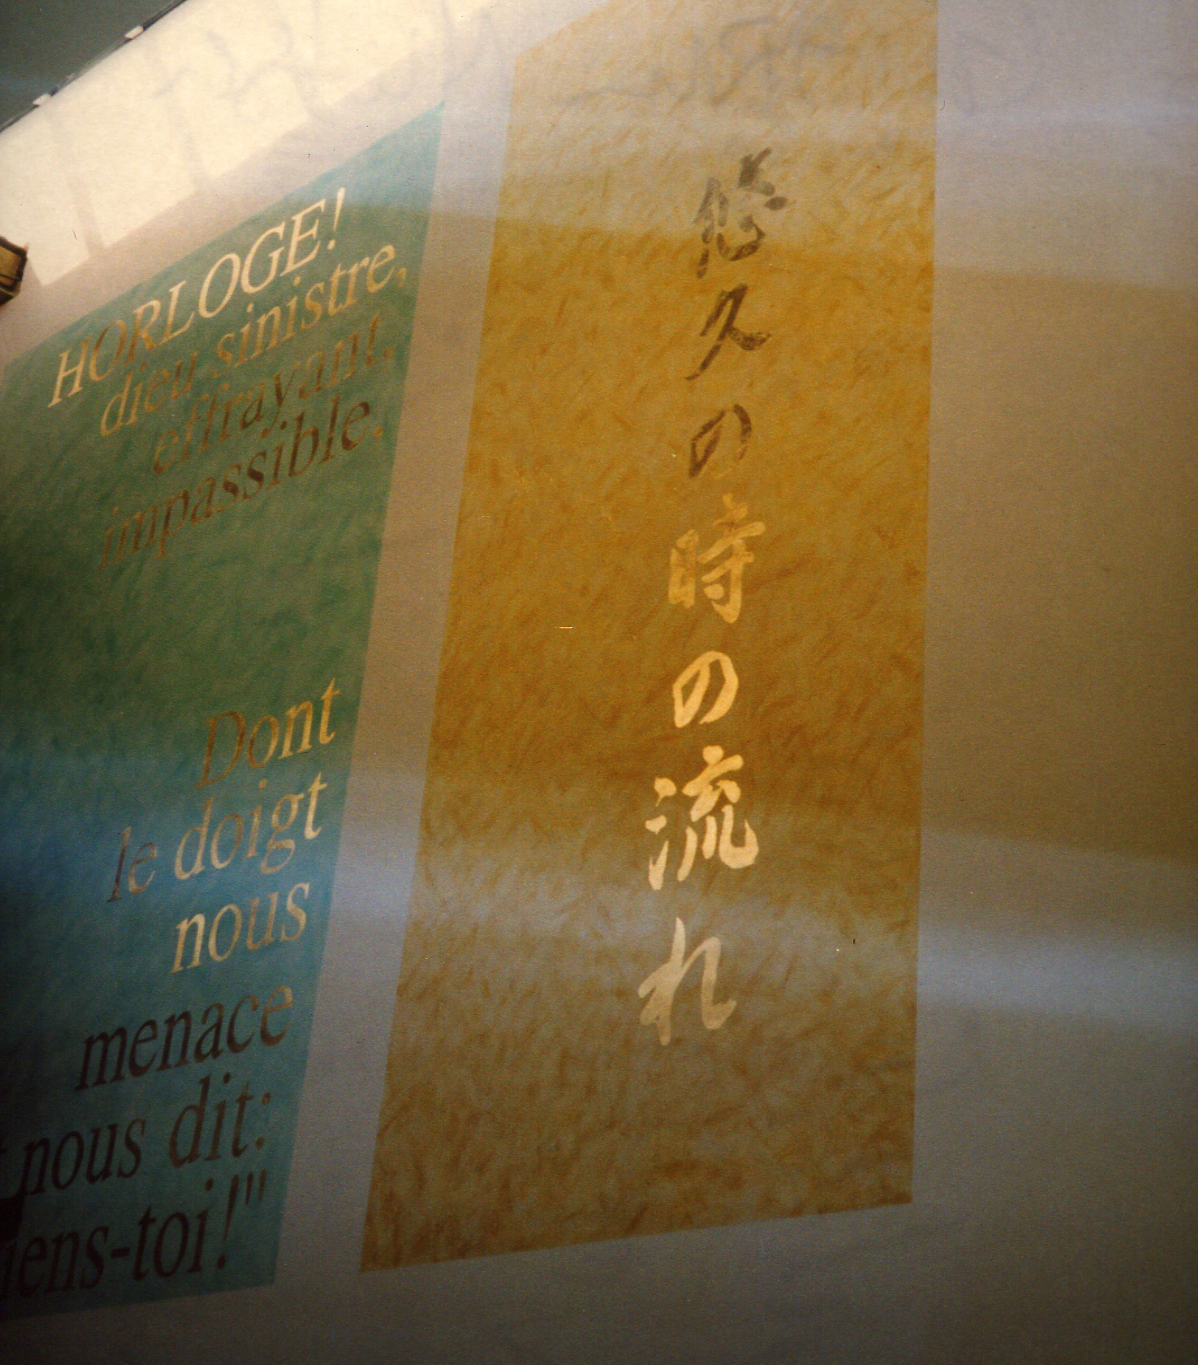 the japanese text